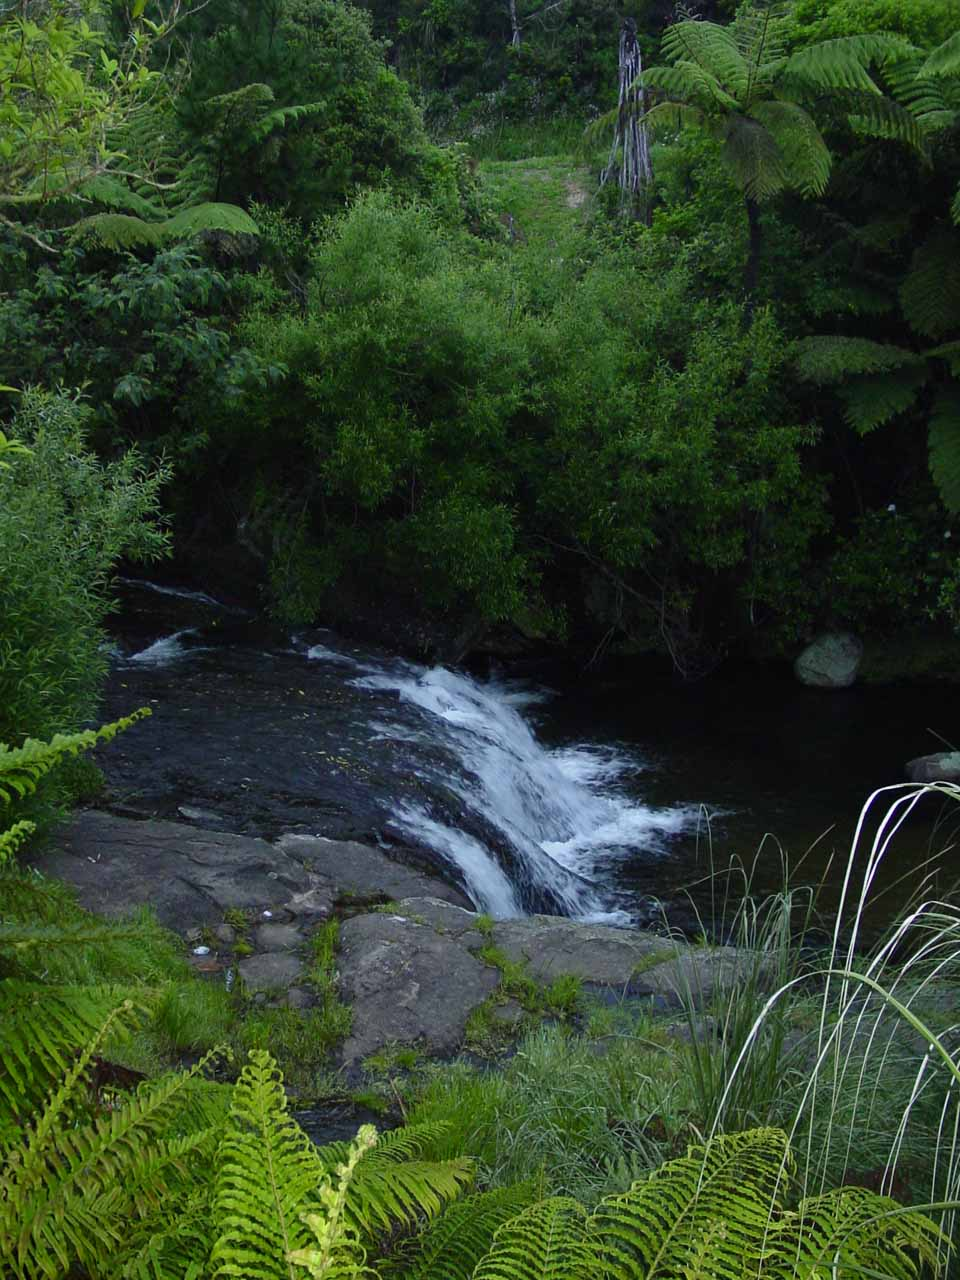 A small cascade on the Kaiate Stream as I was starting the hike